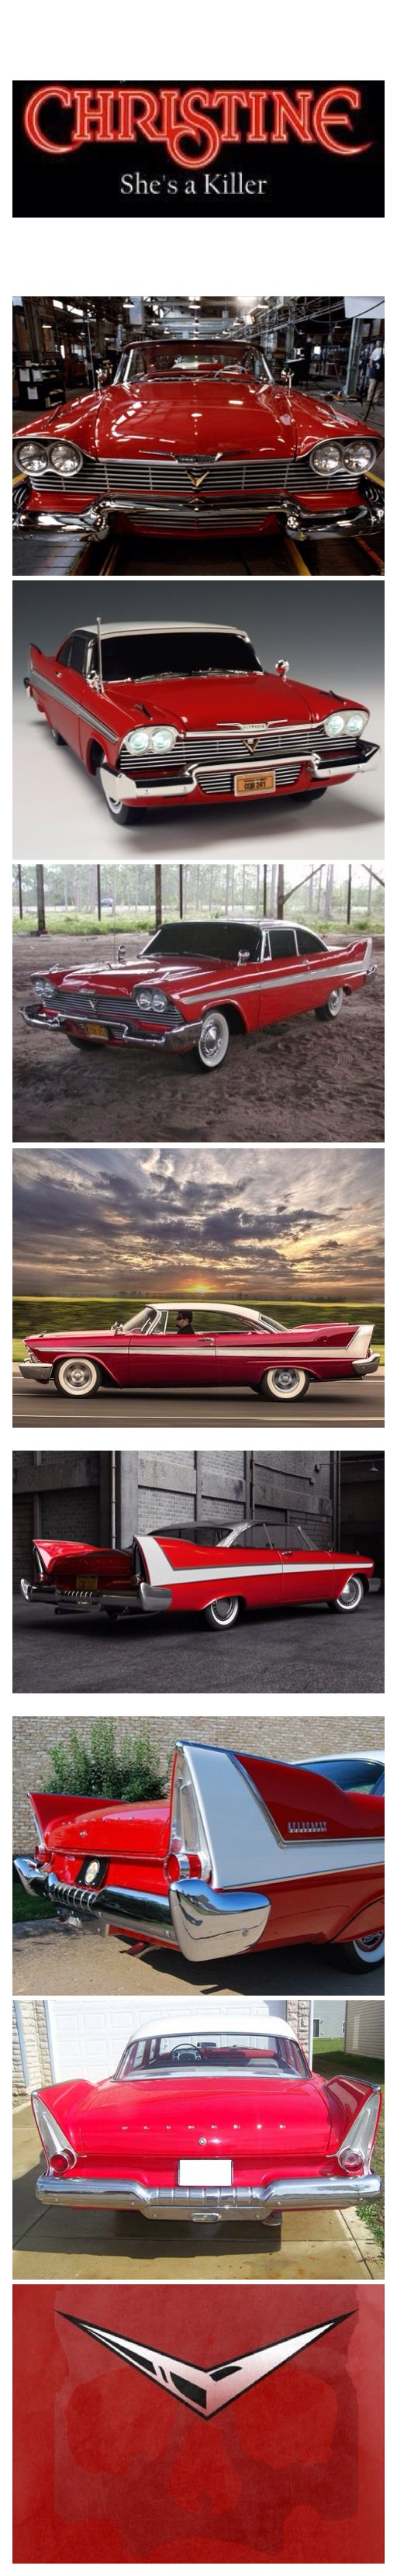 Christine Is A 1958 Plymouth Fury.